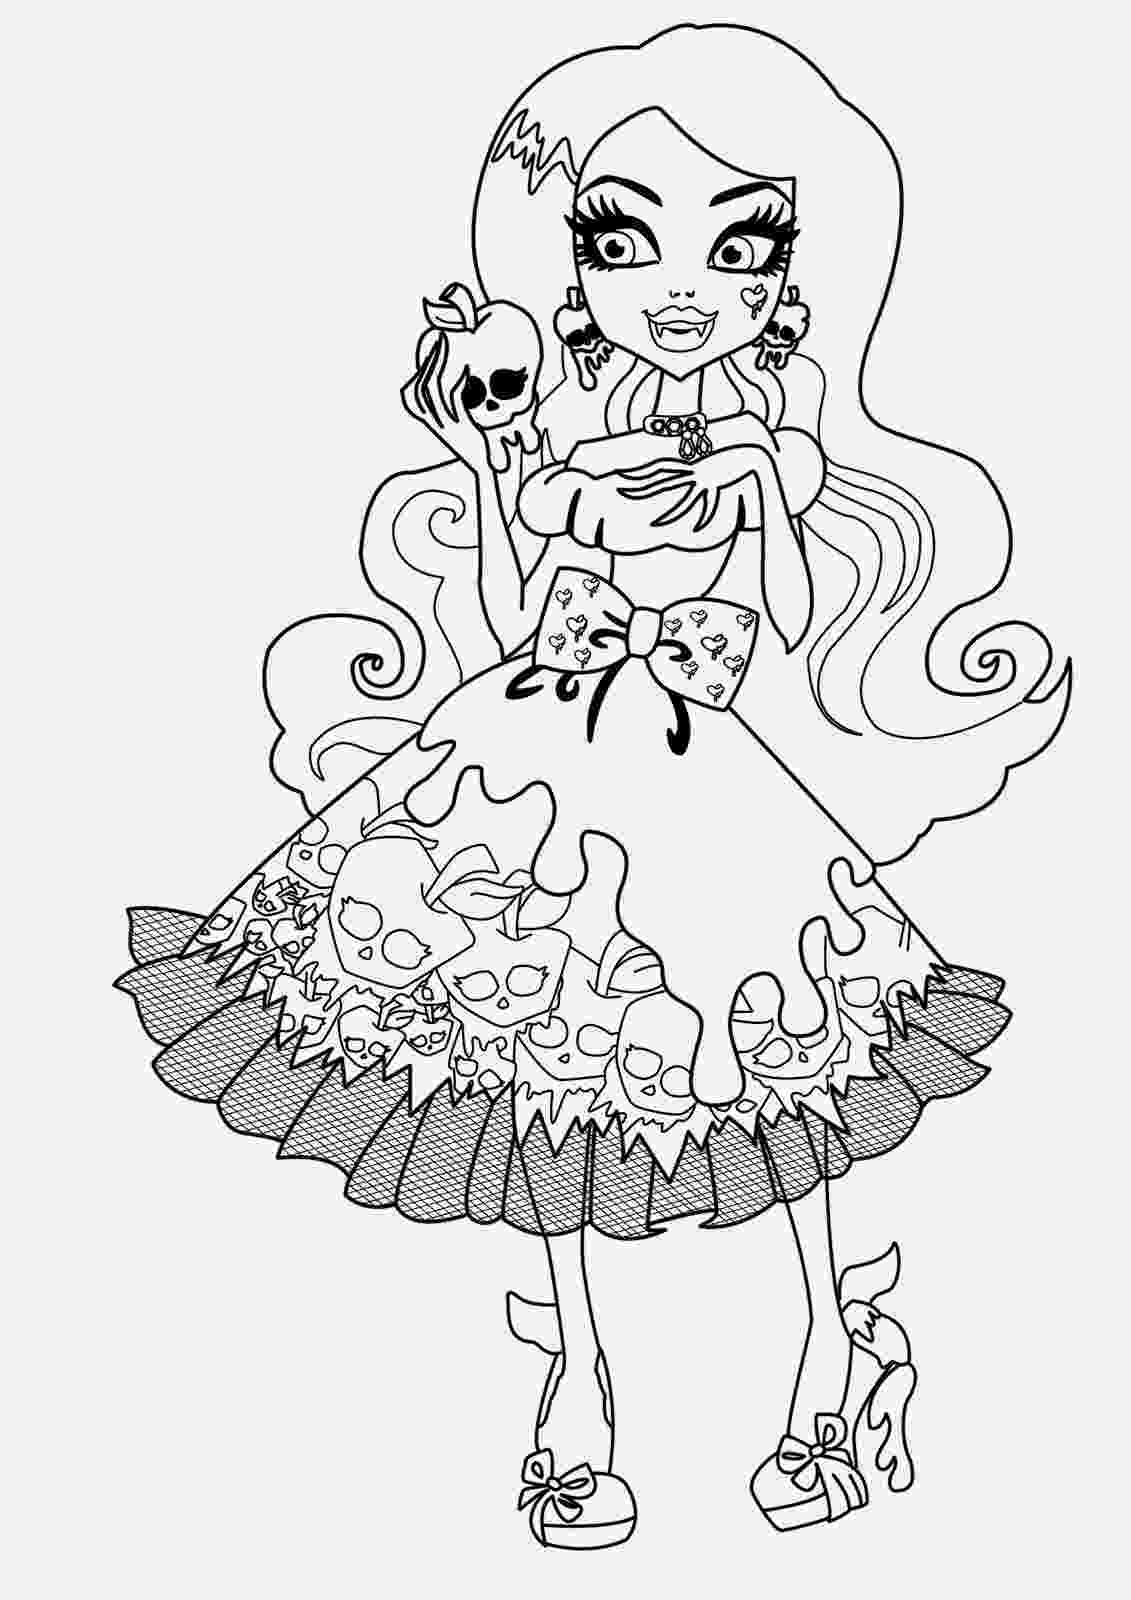 monster high coloring pages printables free printable monster high coloring pages coloring pages monster coloring printables pages high